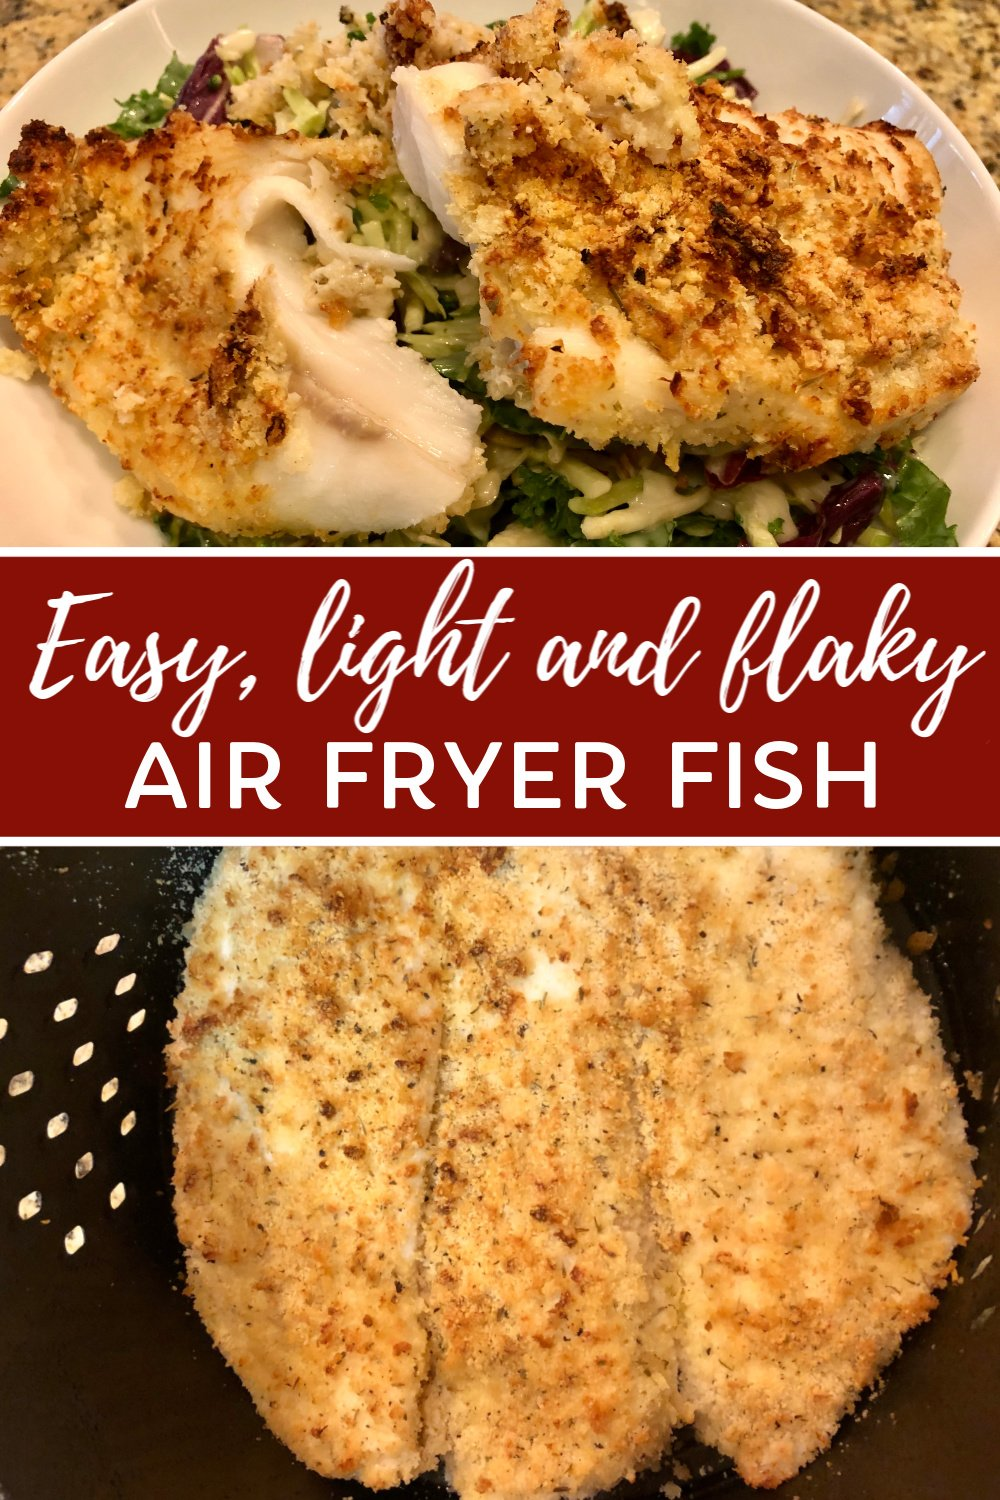 Easy, light and flaky Air Fryer Fish, Coast to Coast